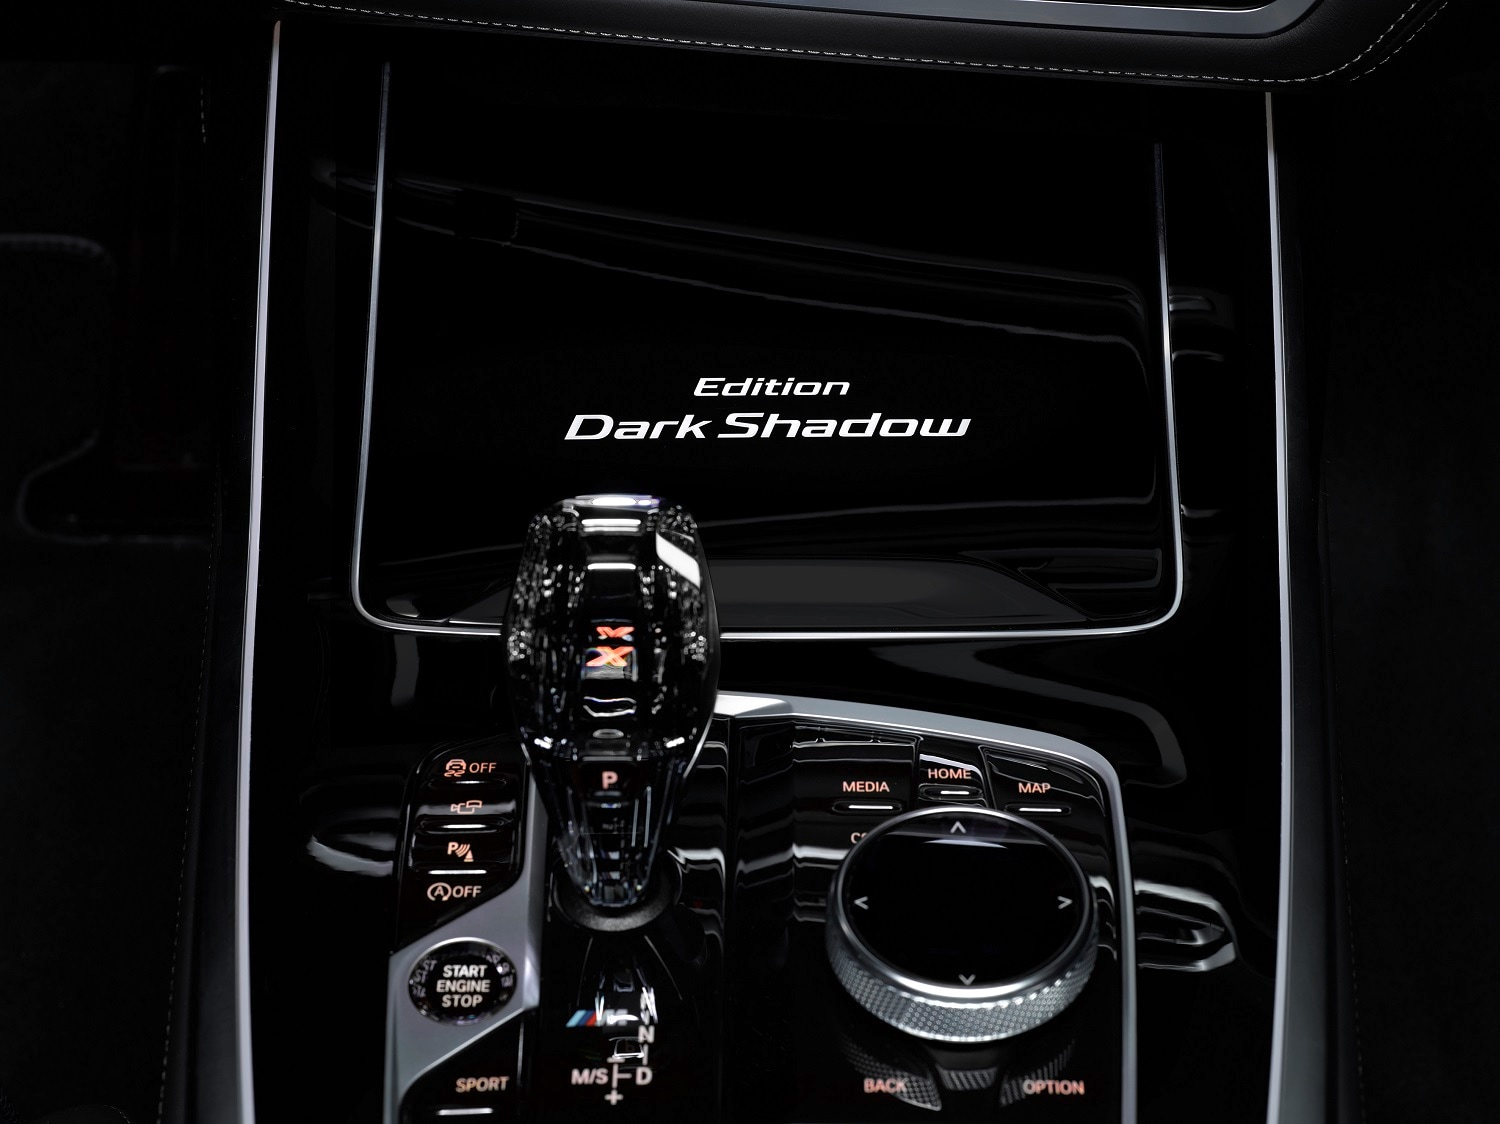 Transmission duties are handled by an eight speed steptronic sport automatic unit. The new BMW X7 M50d comes as standard with the M Sport differential and a model-specific chassis set-up.